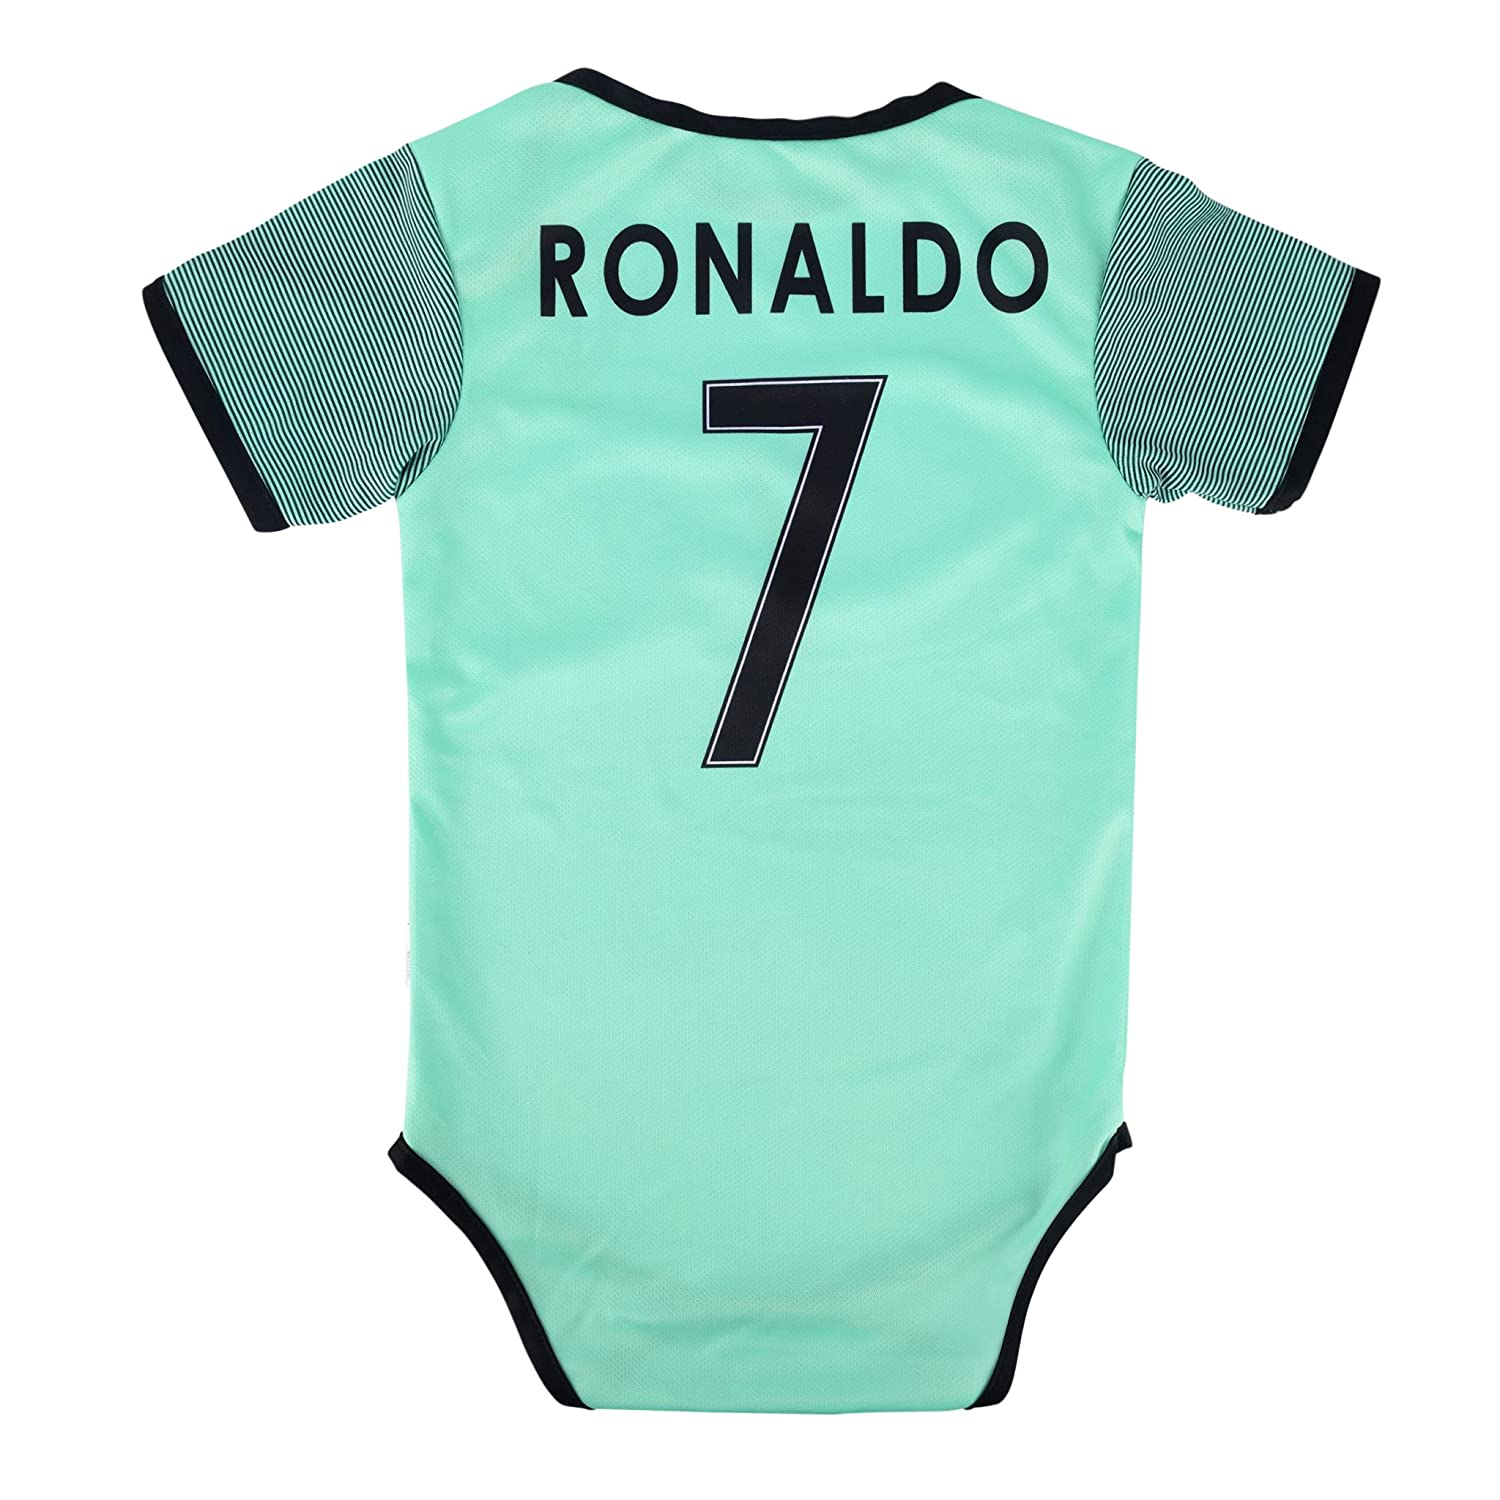 32a103d96 Amazon.com   World Cup Baby Cristiano Ronaldo  7 Portugal Soccer Jersey  Baby Infant and Toddler Onesie Romper Premium Quality   Sports   Outdoors